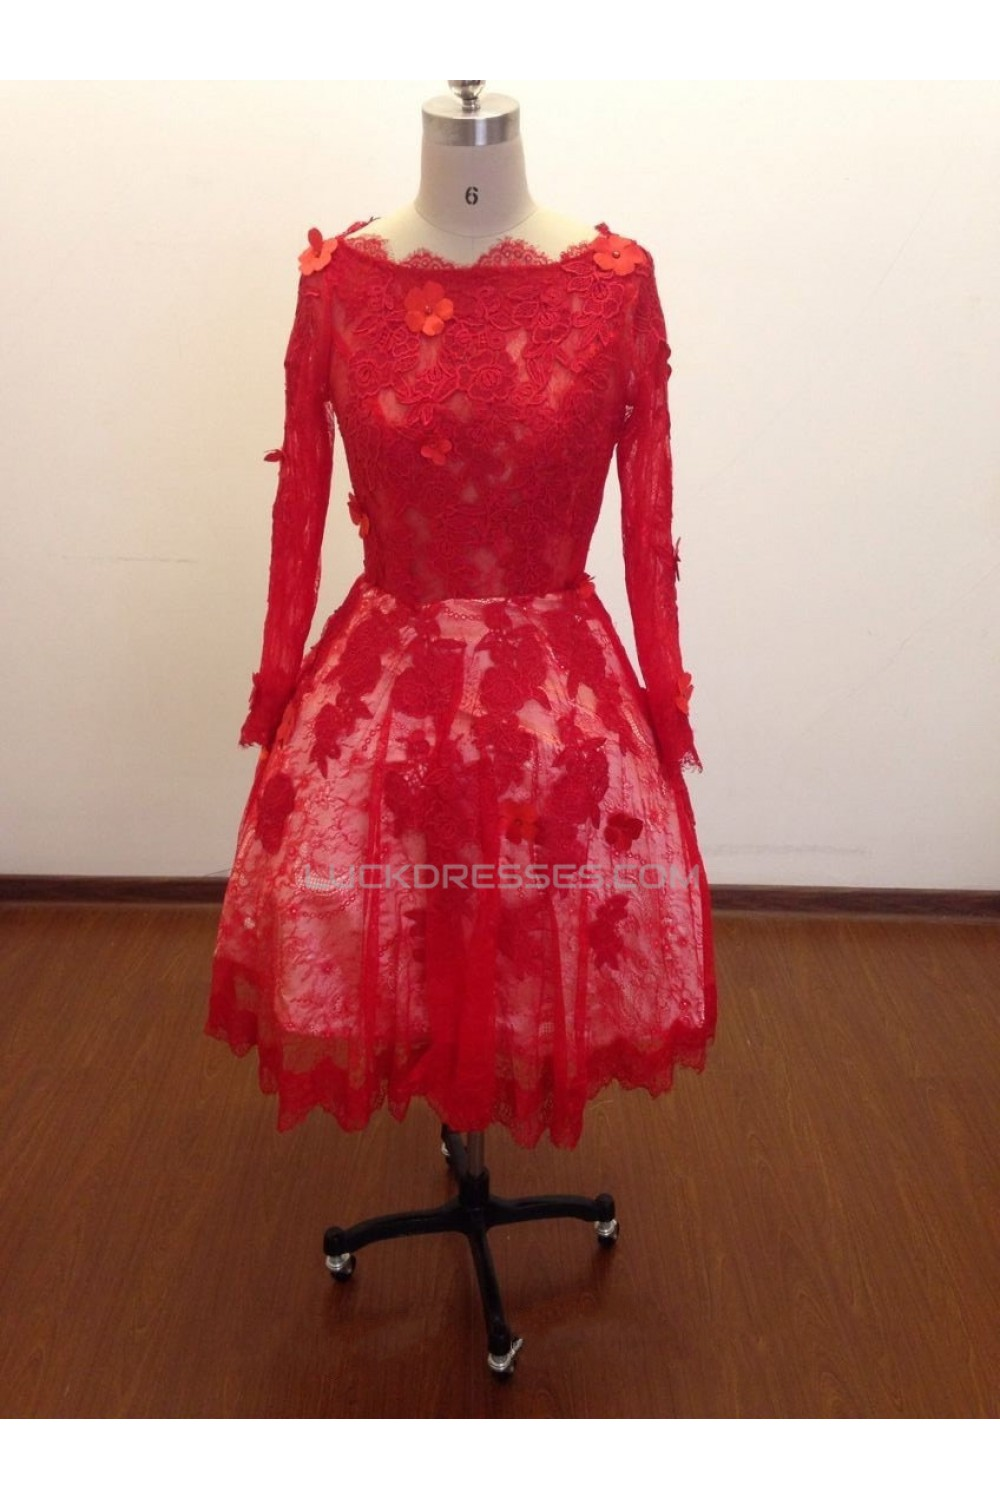 ALine Long Sleeve Short Red Lace Prom Evening Formal